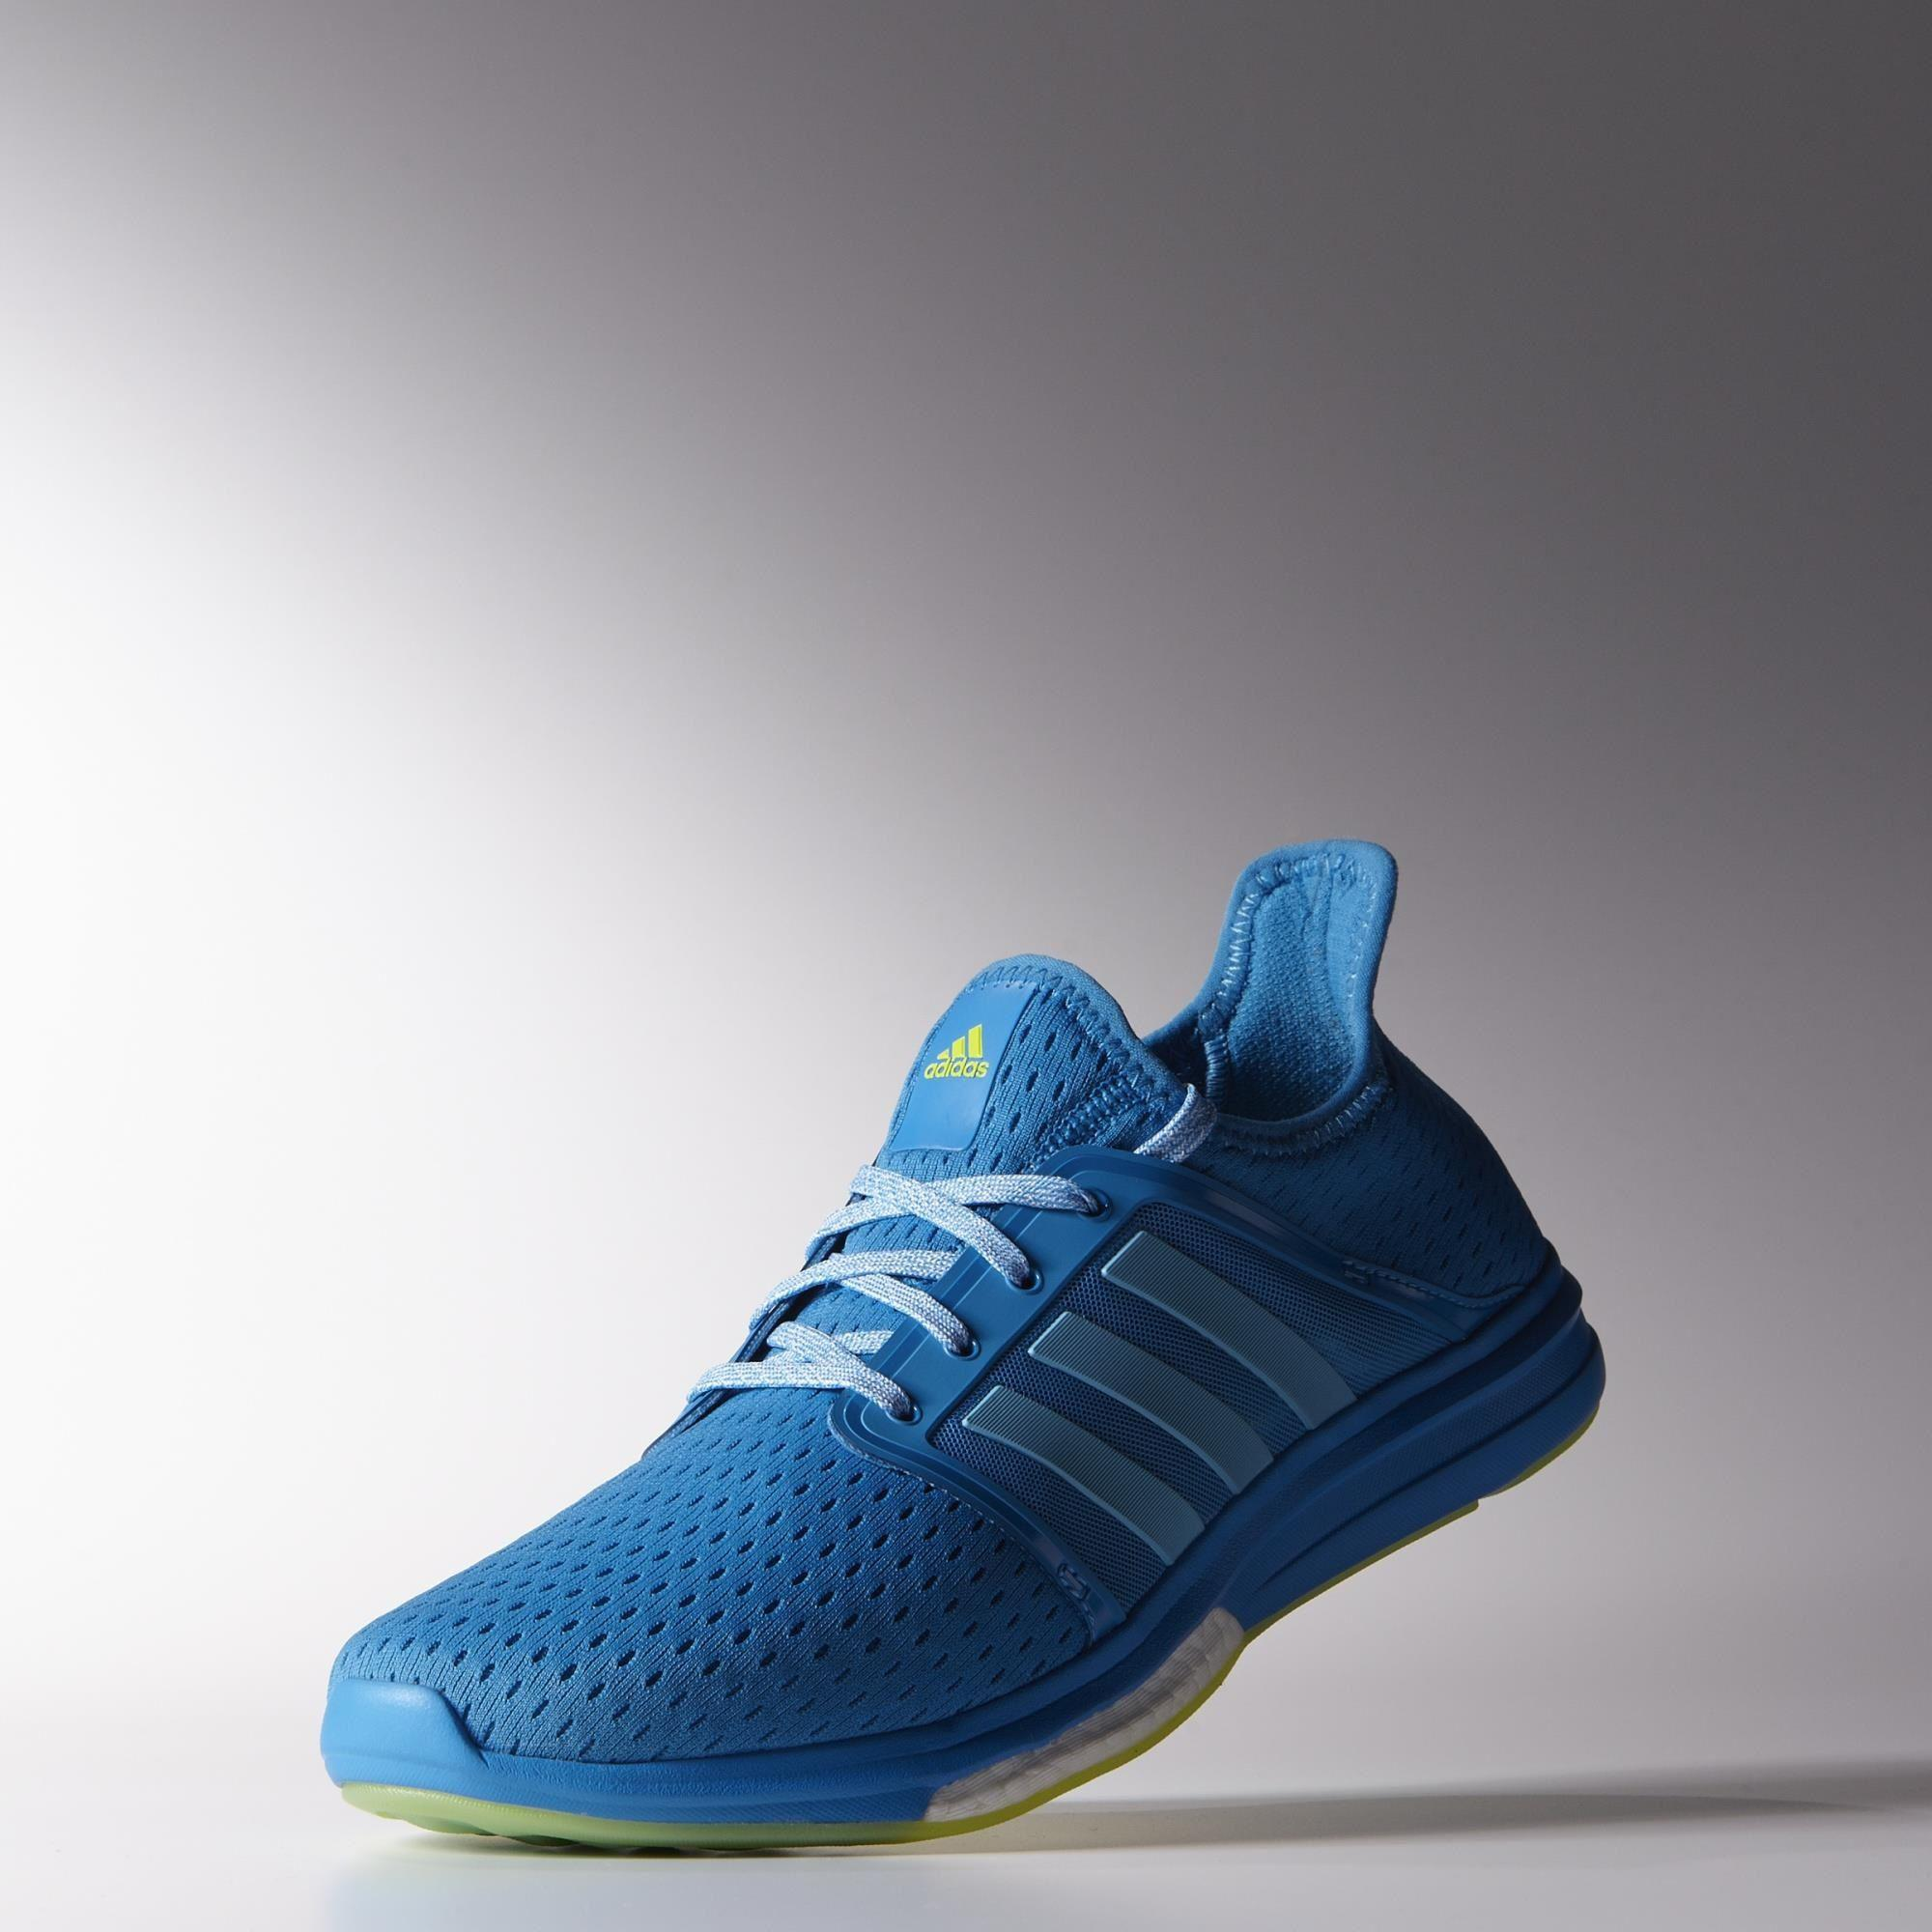 promo code 1d922 4d71b Adidas Mens Climachill Sonic Boost Running Shoes - Solar Blue